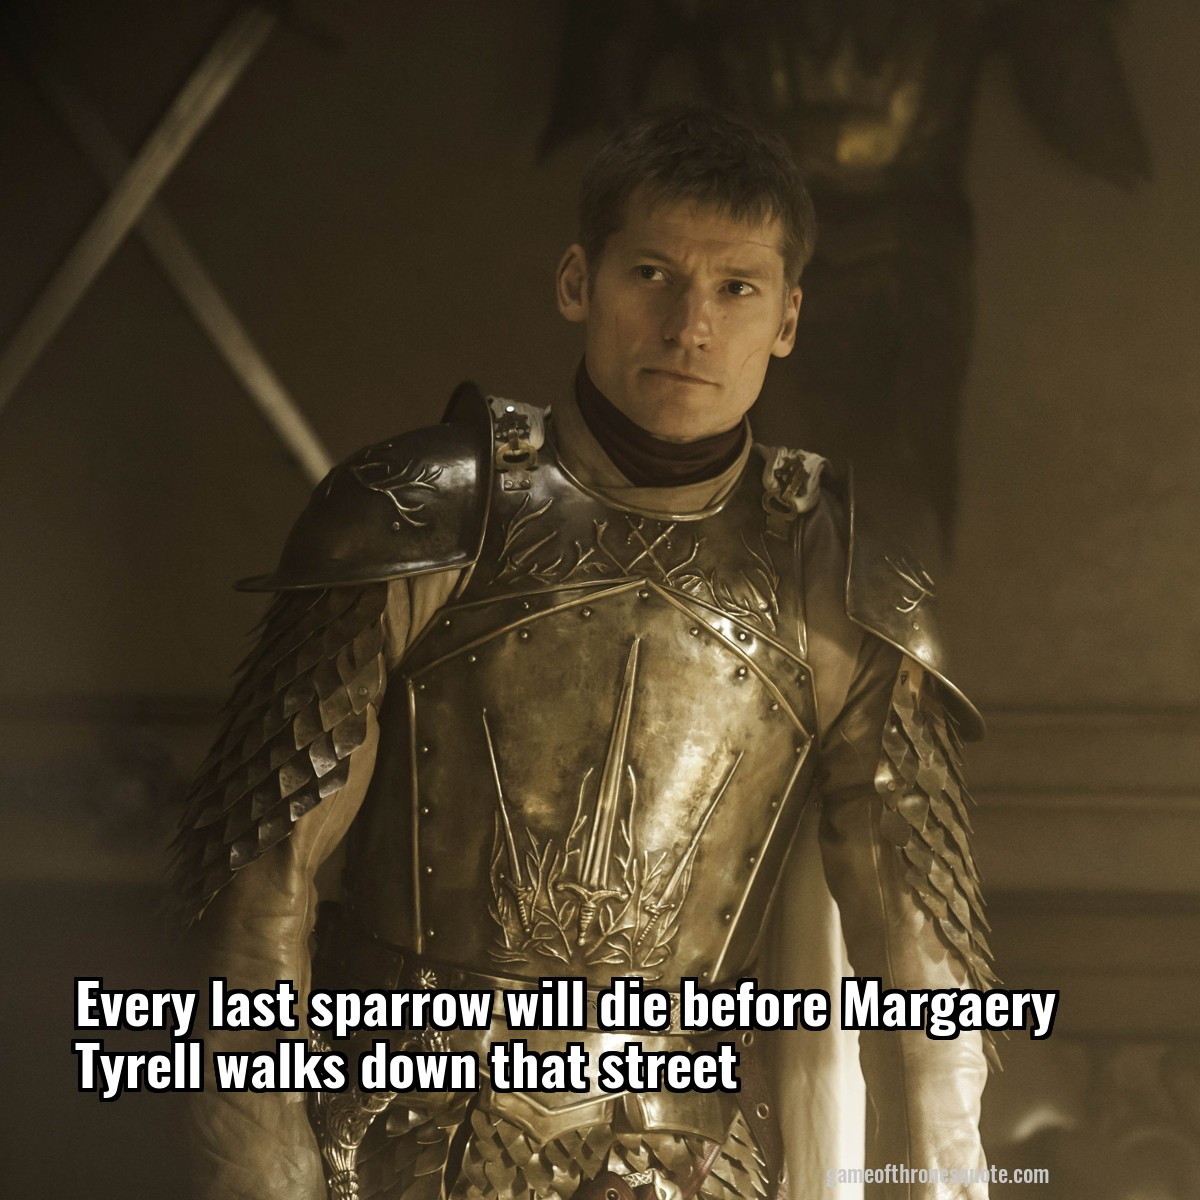 Every last sparrow will die before Margaery Tyrell walks down that street